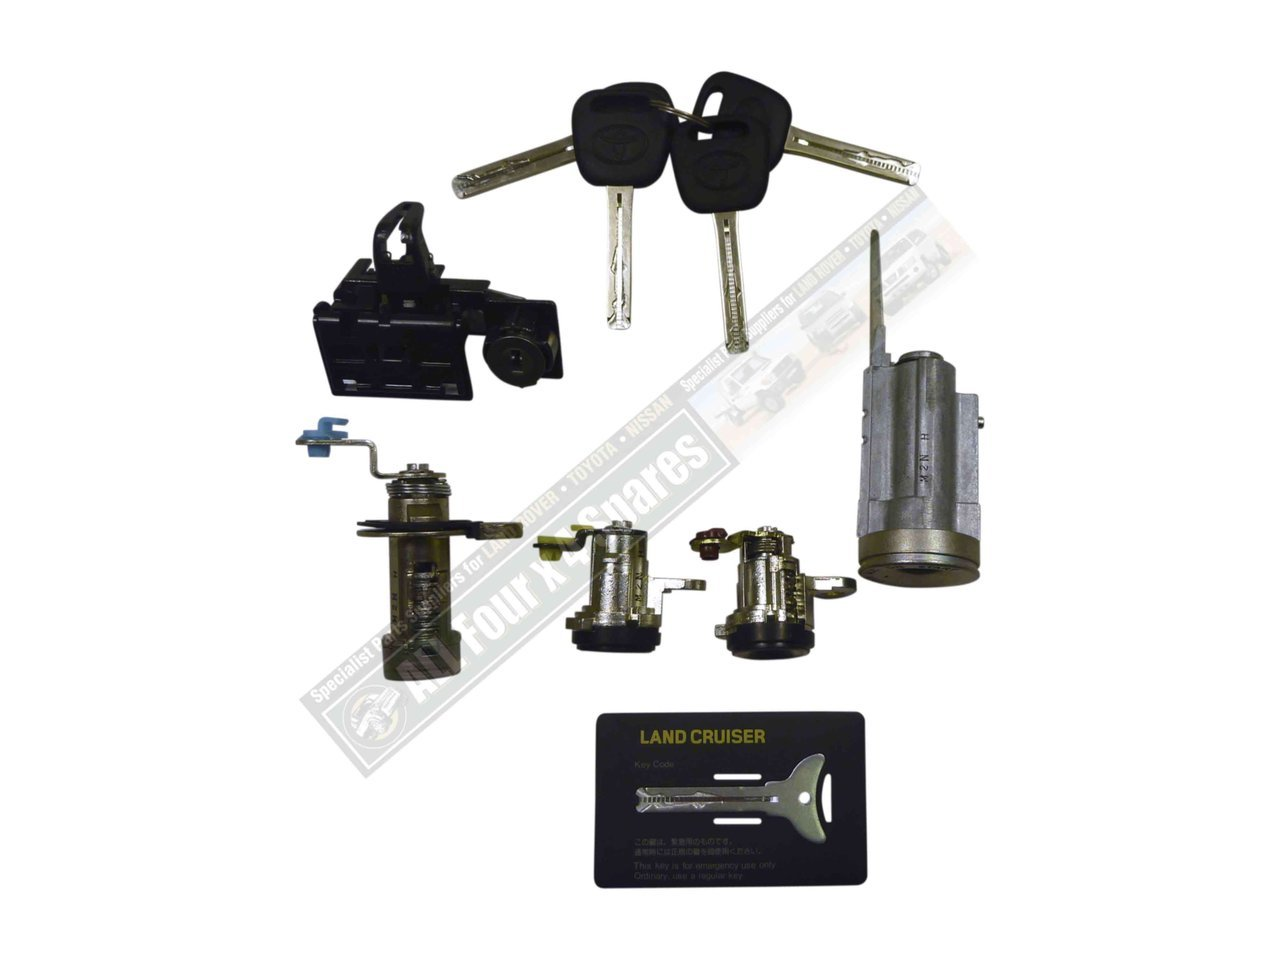 Complete Lock Amp Key Set Suitable For Landcruiser 80 Series